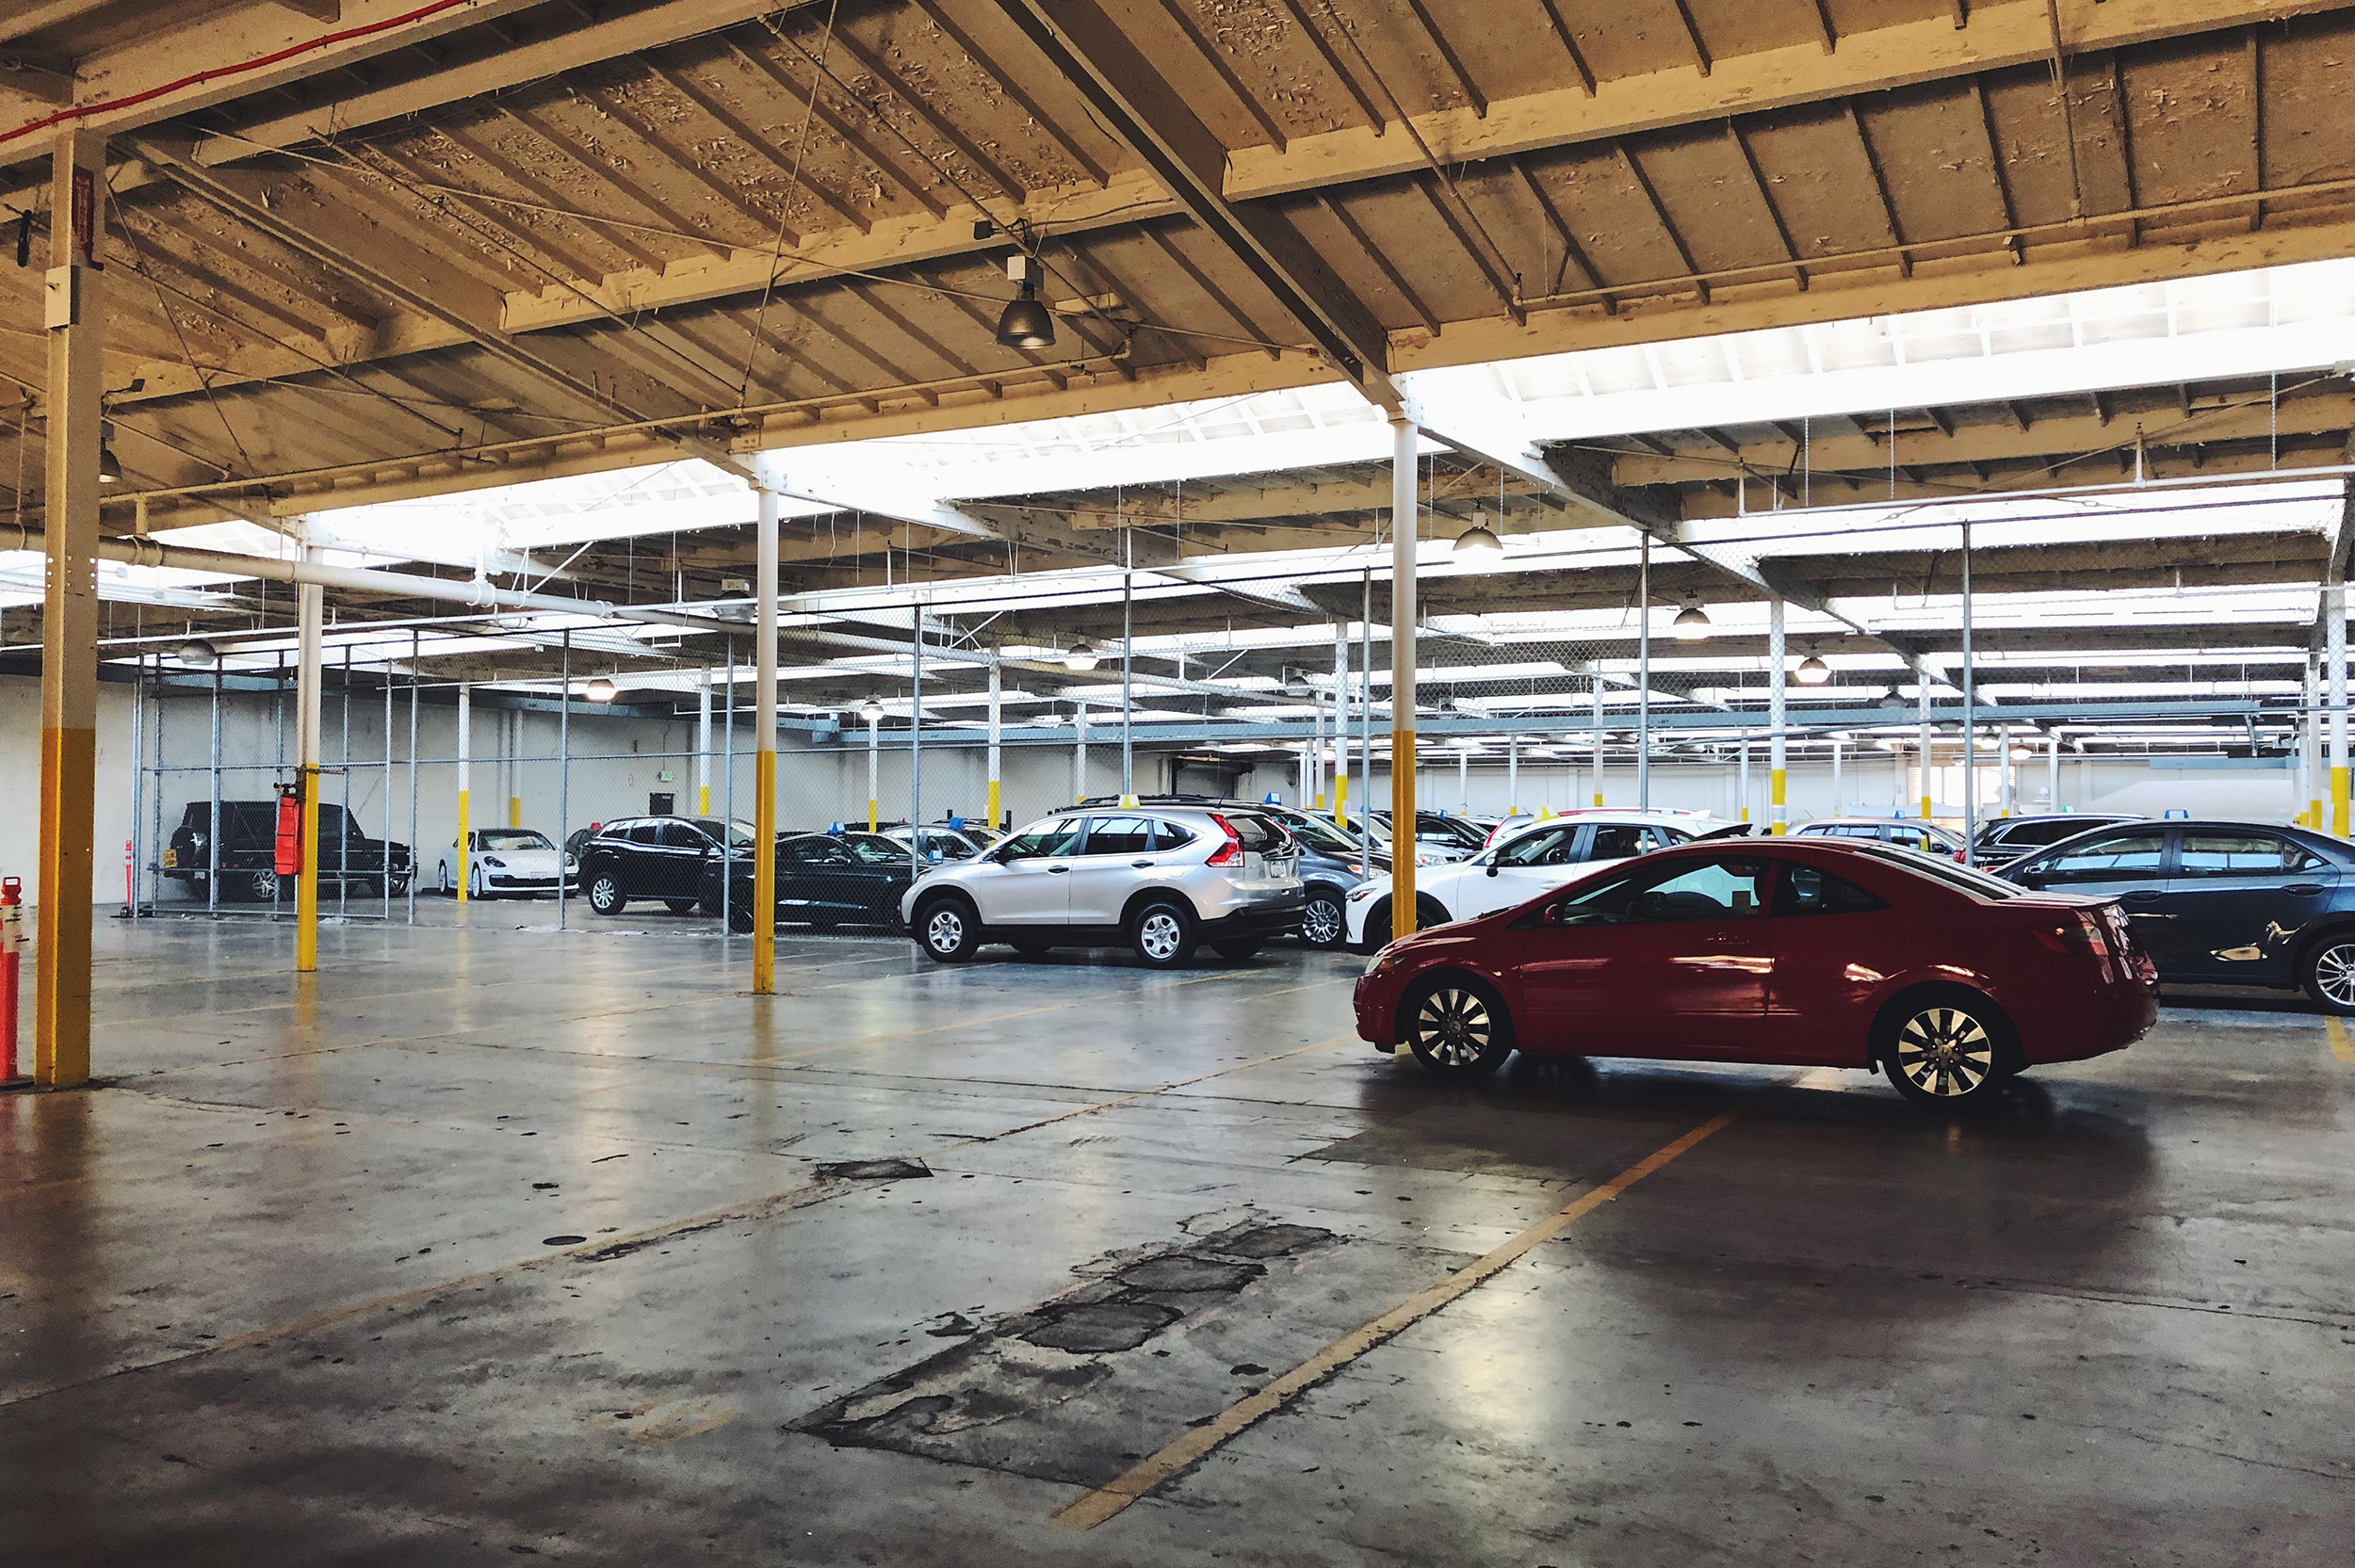 Warehouses full of cars are cool. Exhibit A.